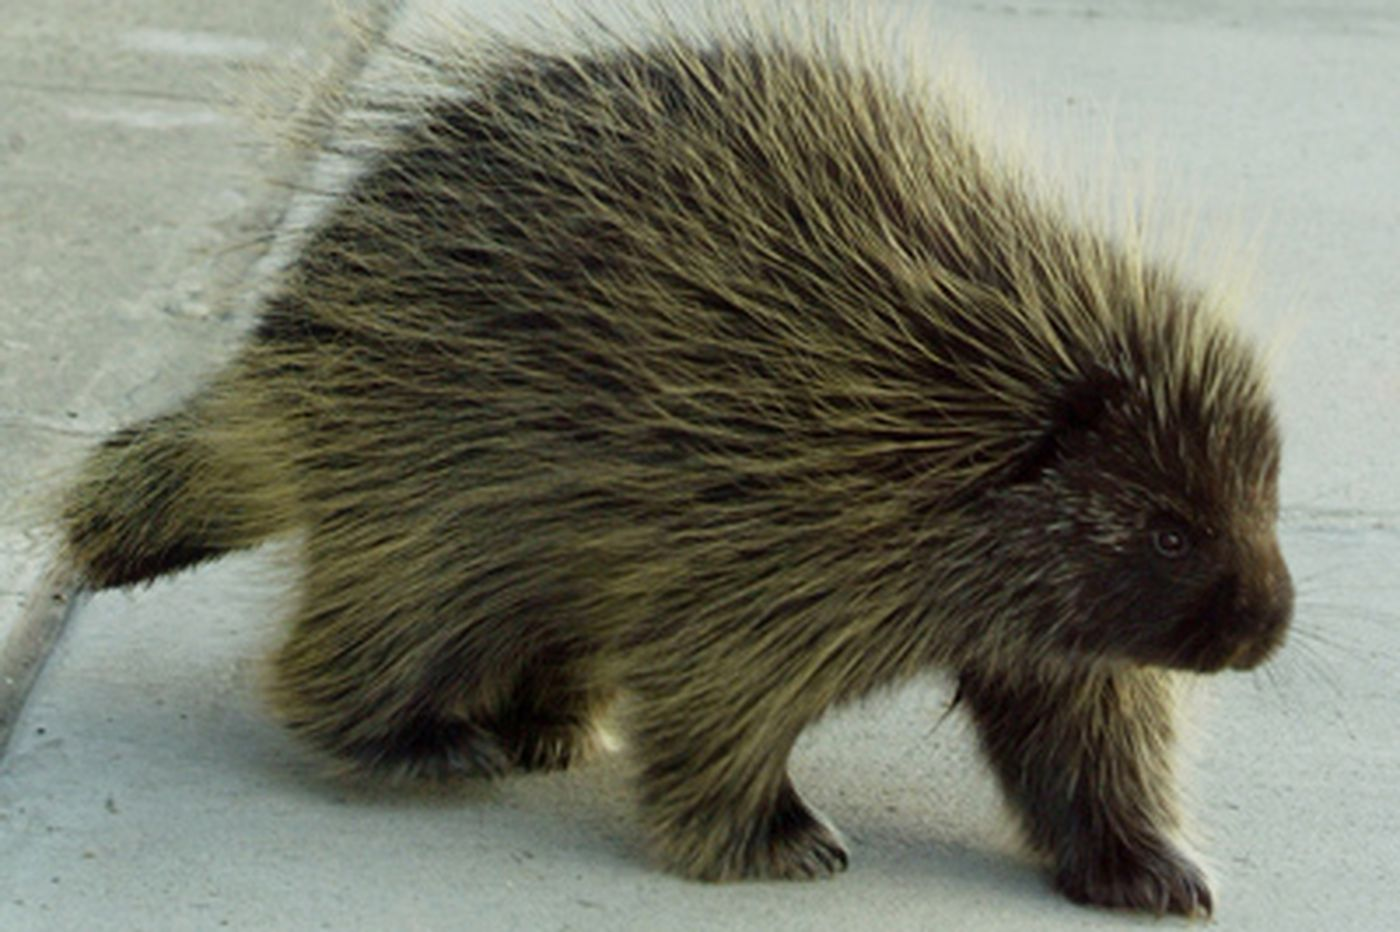 Pa  Game Commission considers open season on porcupines